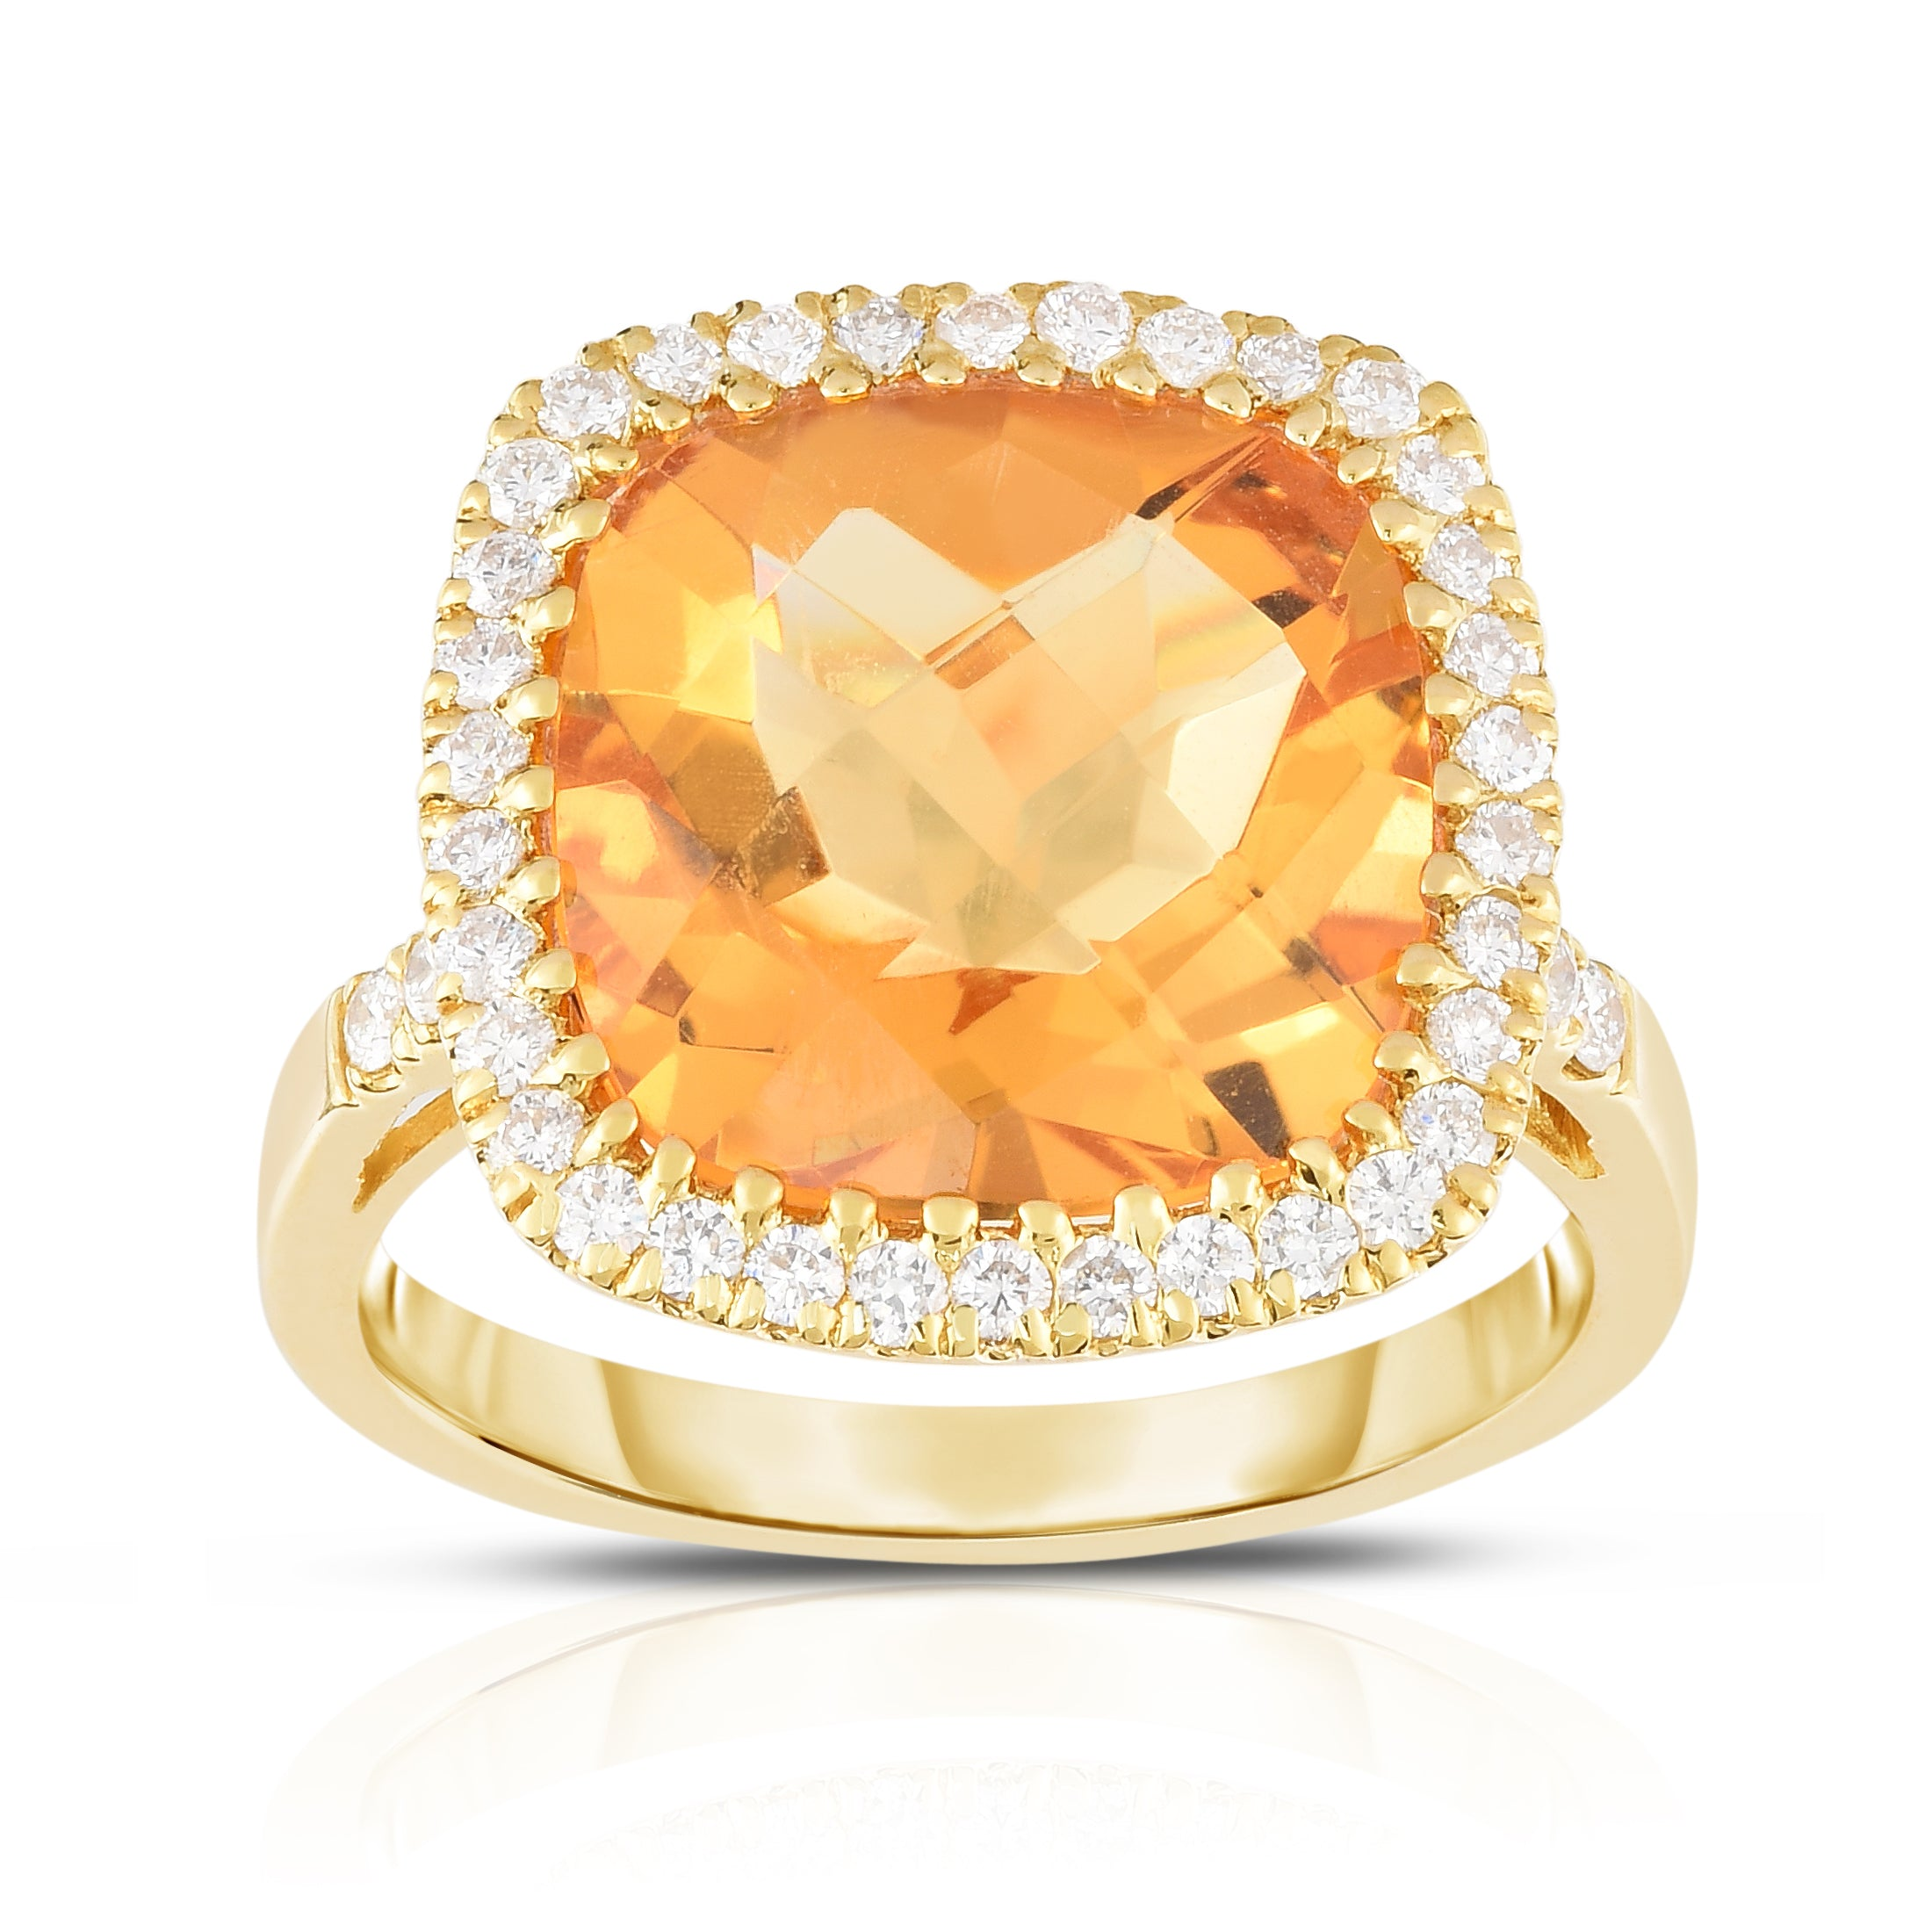 yellowish diamond product intense menu orange pear ballerina rings fancy shape ring engagement copy